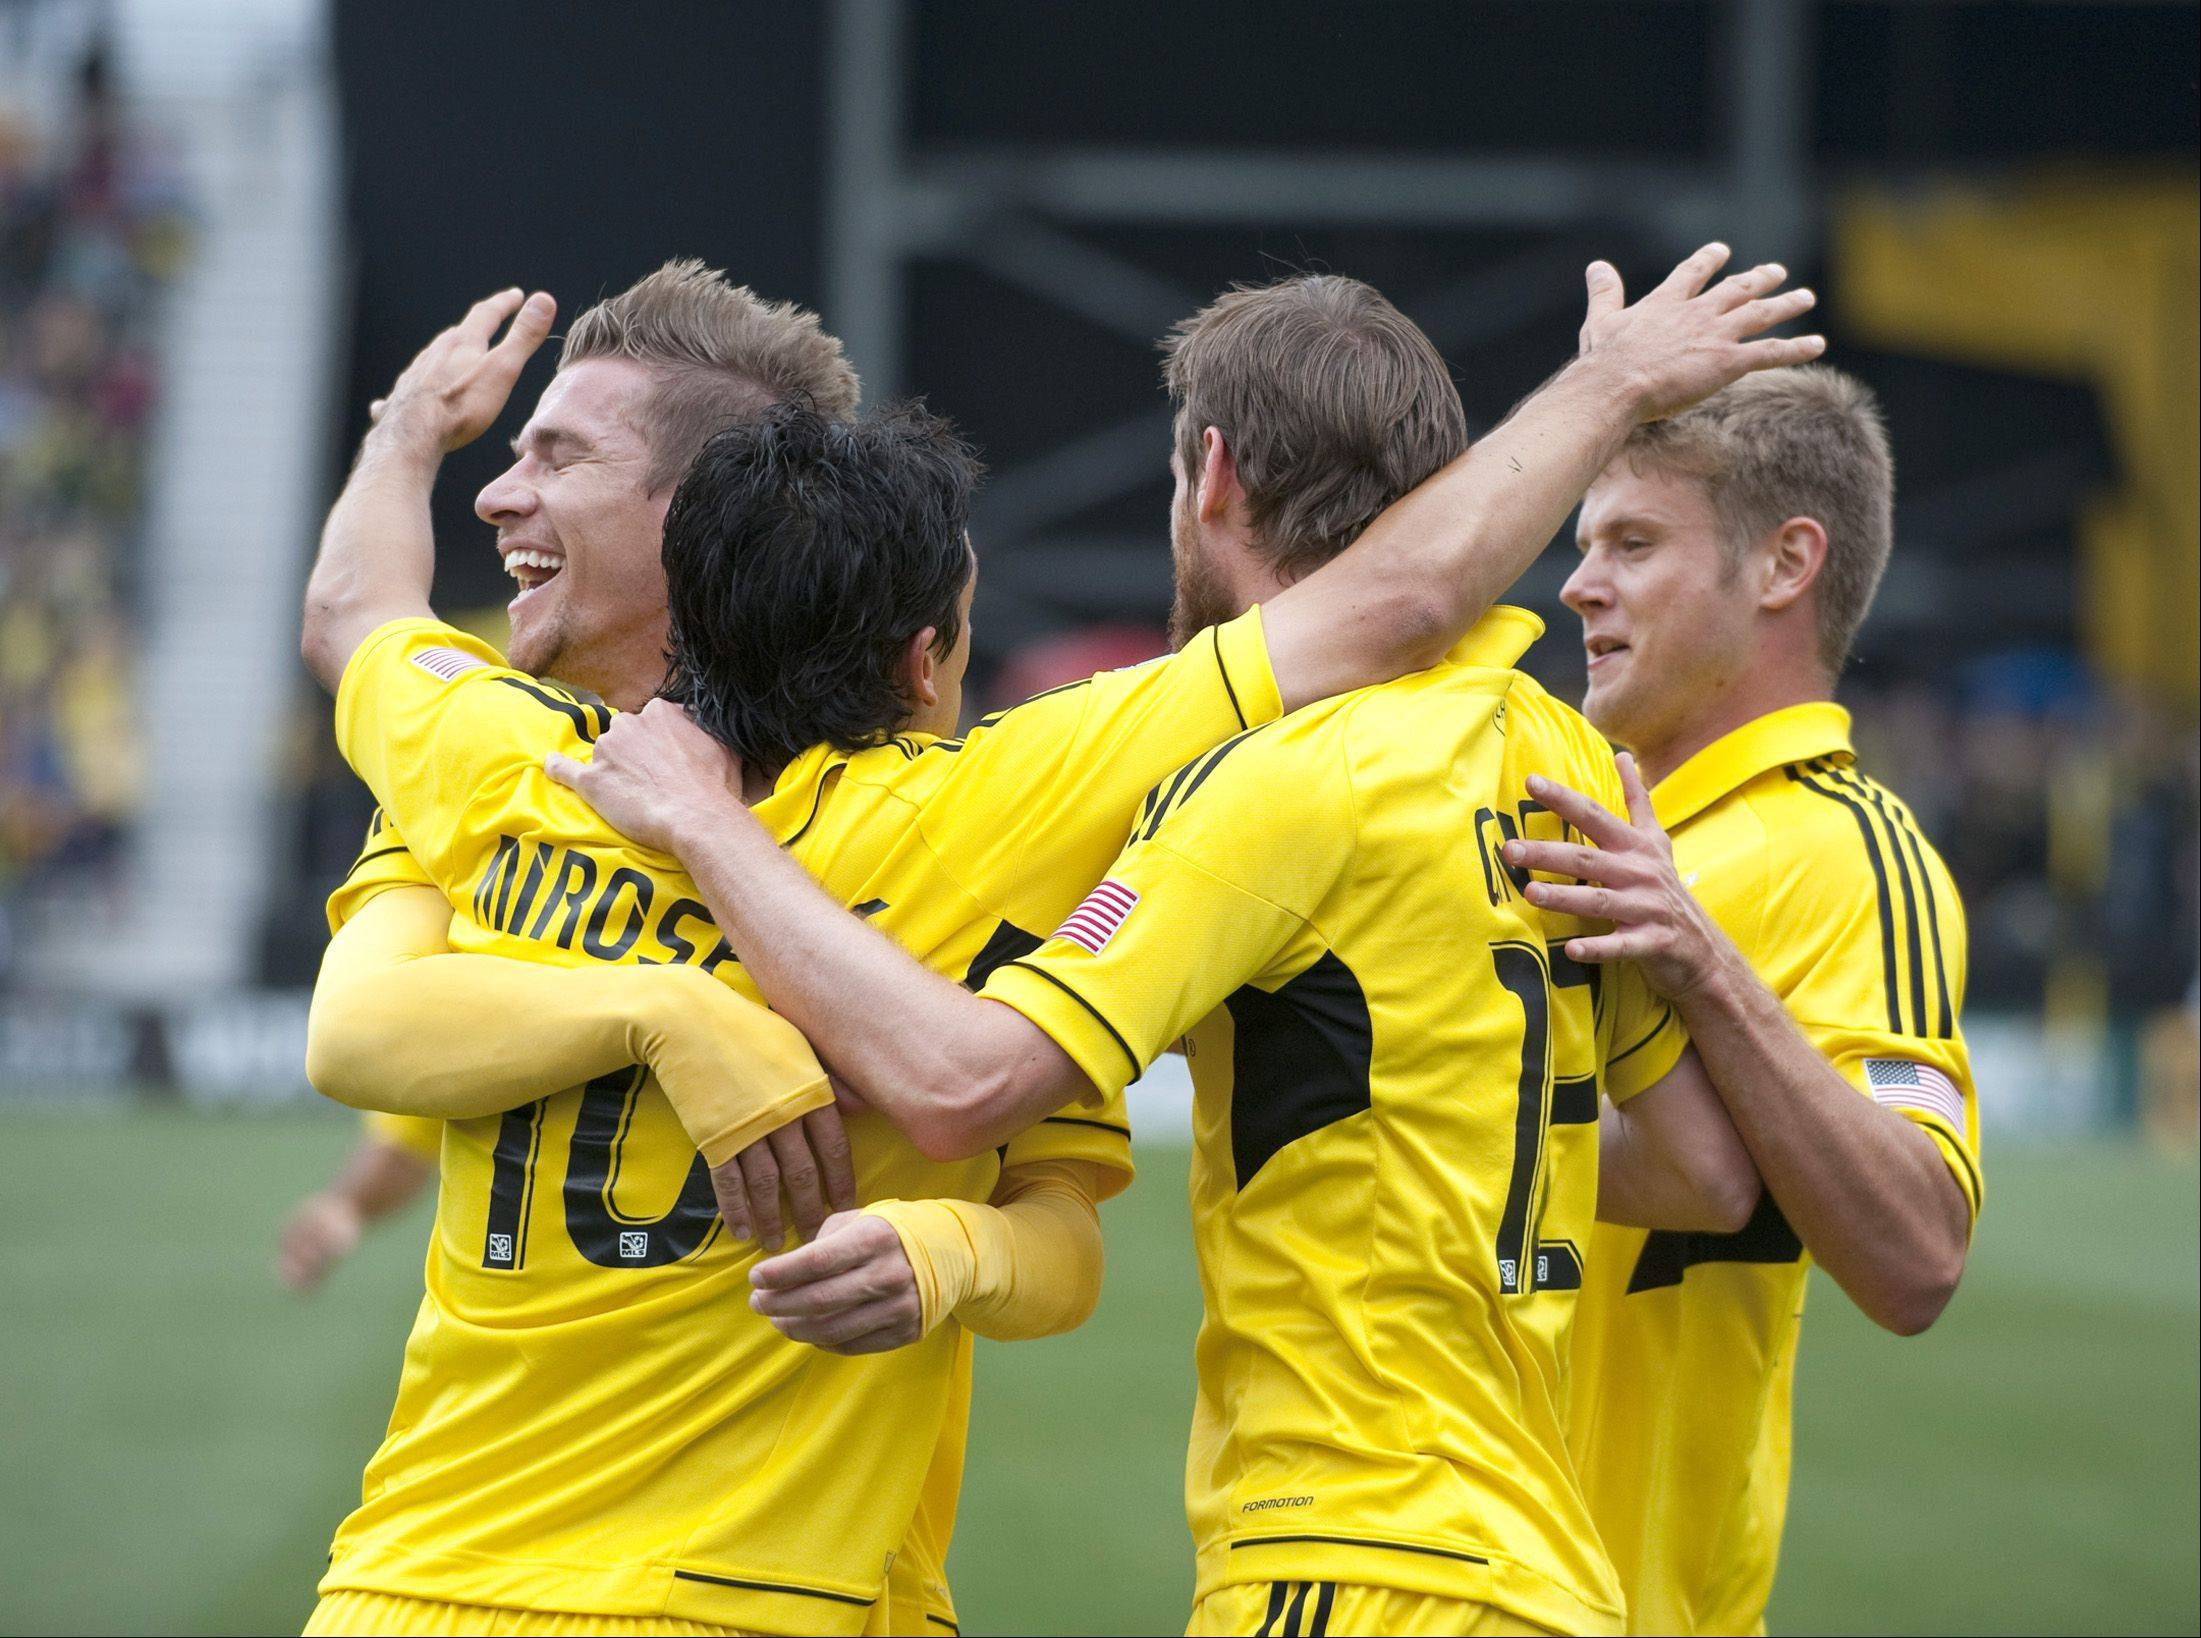 Columbus Crew midfielder Kirk Urso (15) (far right) celebrates with teammates against the Montreal Impact for the opening game of the season at Crew Stadium in Columbus on March 24. Urso was pronounced dead early Sunday at Grant Medical Center in Columbus.